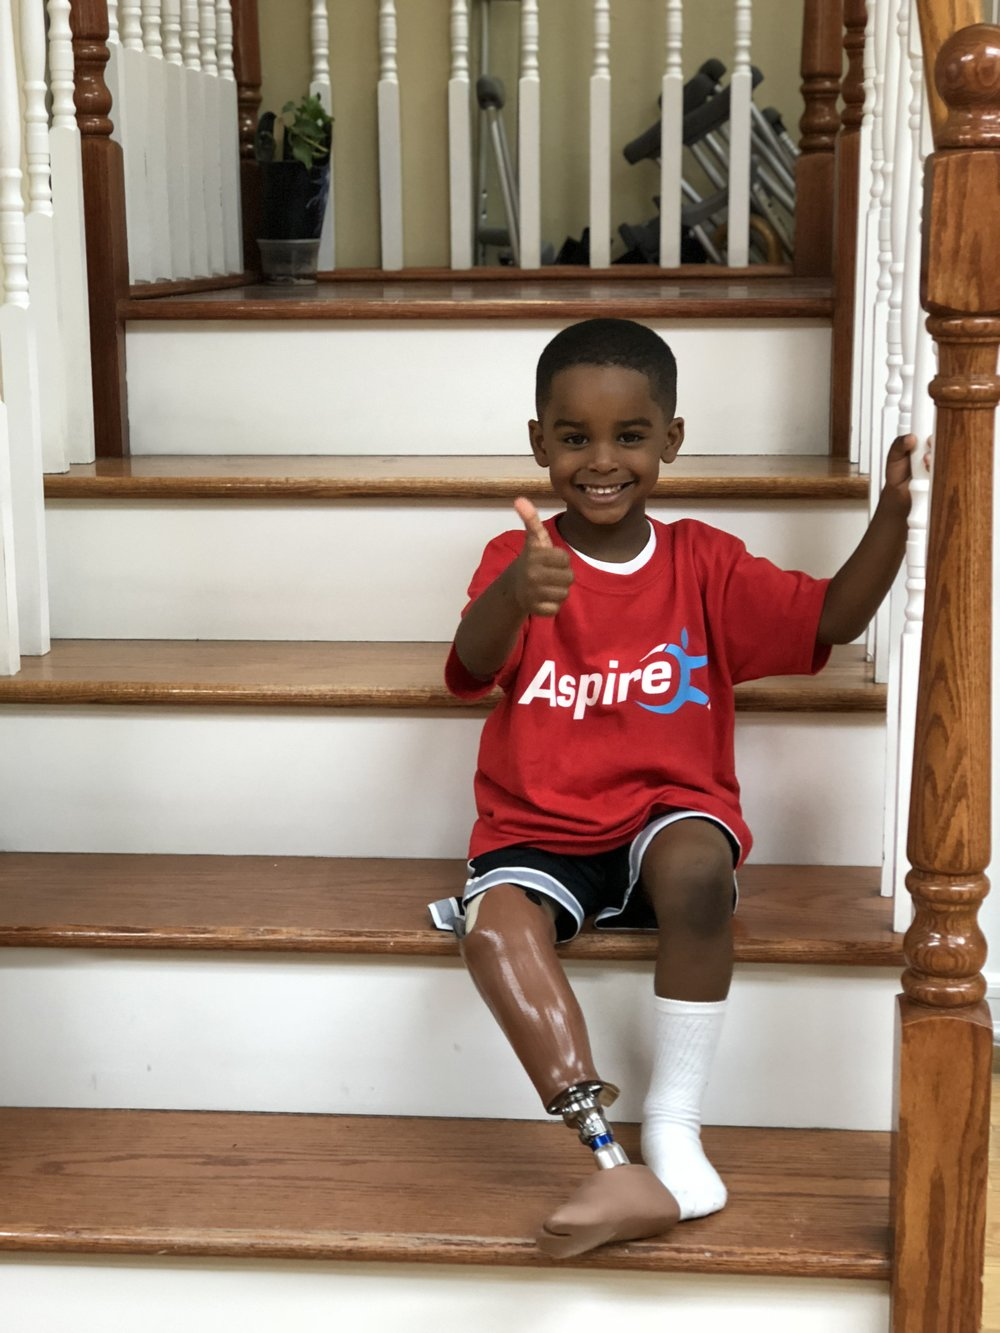 Julez - Julez is a congenital transtibial amputee who received a swim leg so he is able to get in and out of the pool during the summer.